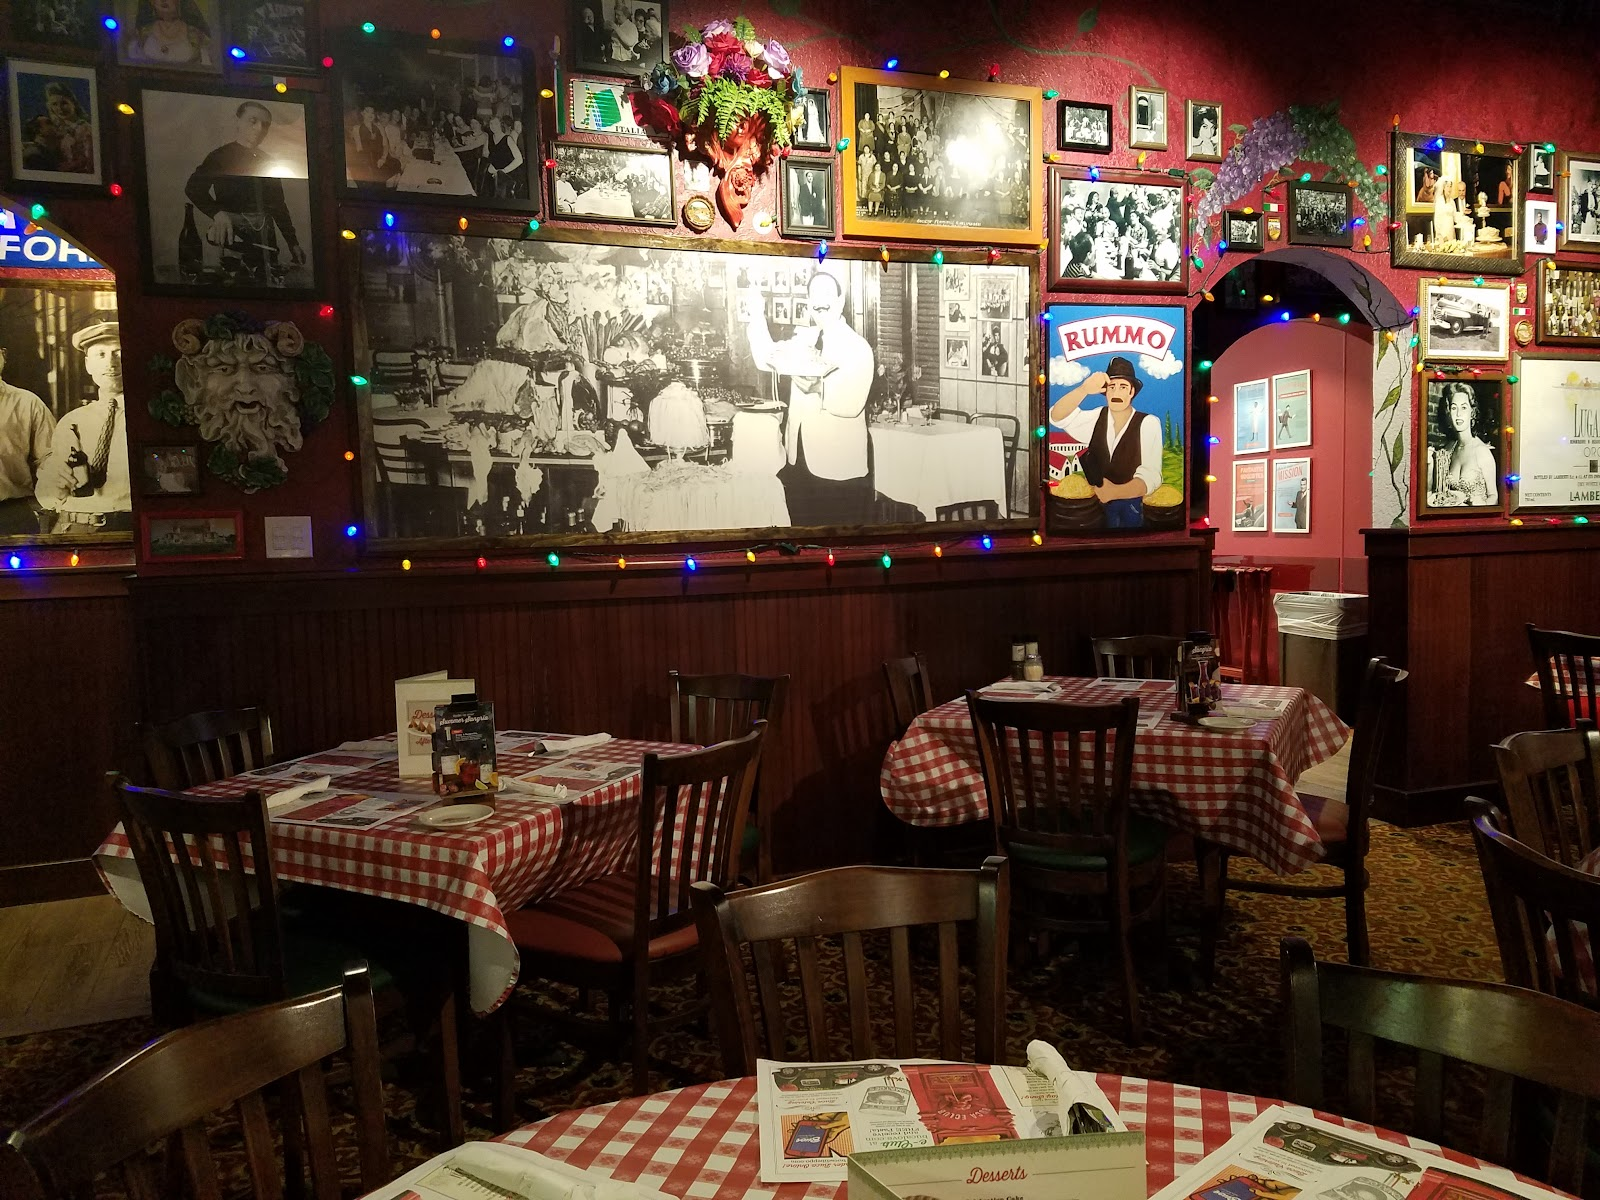 Tastes of orlando buca di beppo opens new location in celebration buca di beppo opens new location in celebration workwithnaturefo